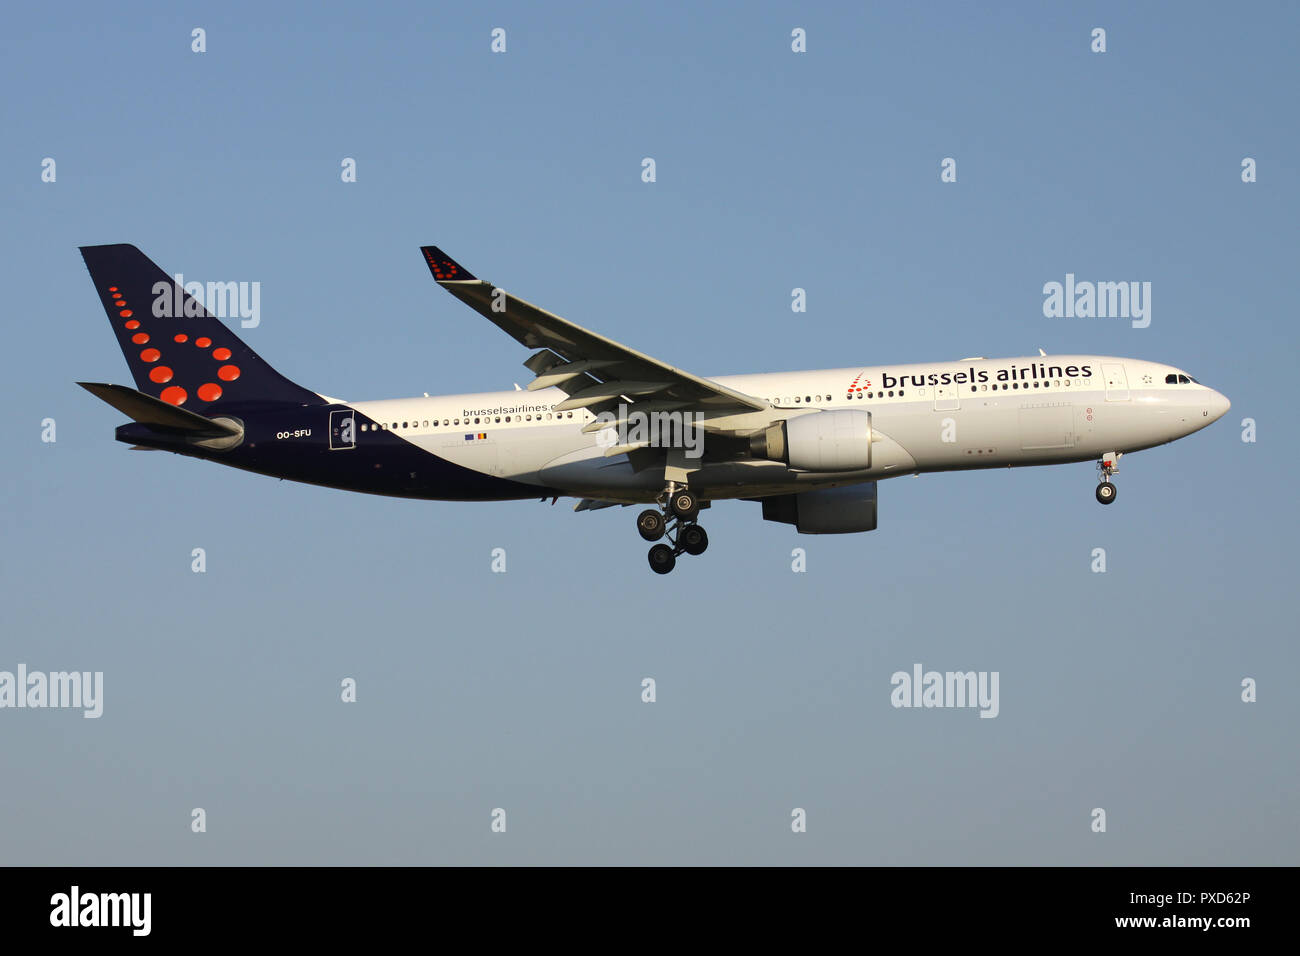 Belgian Brussels Airlines Airbus A330-200 with registration OO-SFU on short final for runway 01 of Brussels Airport. - Stock Image